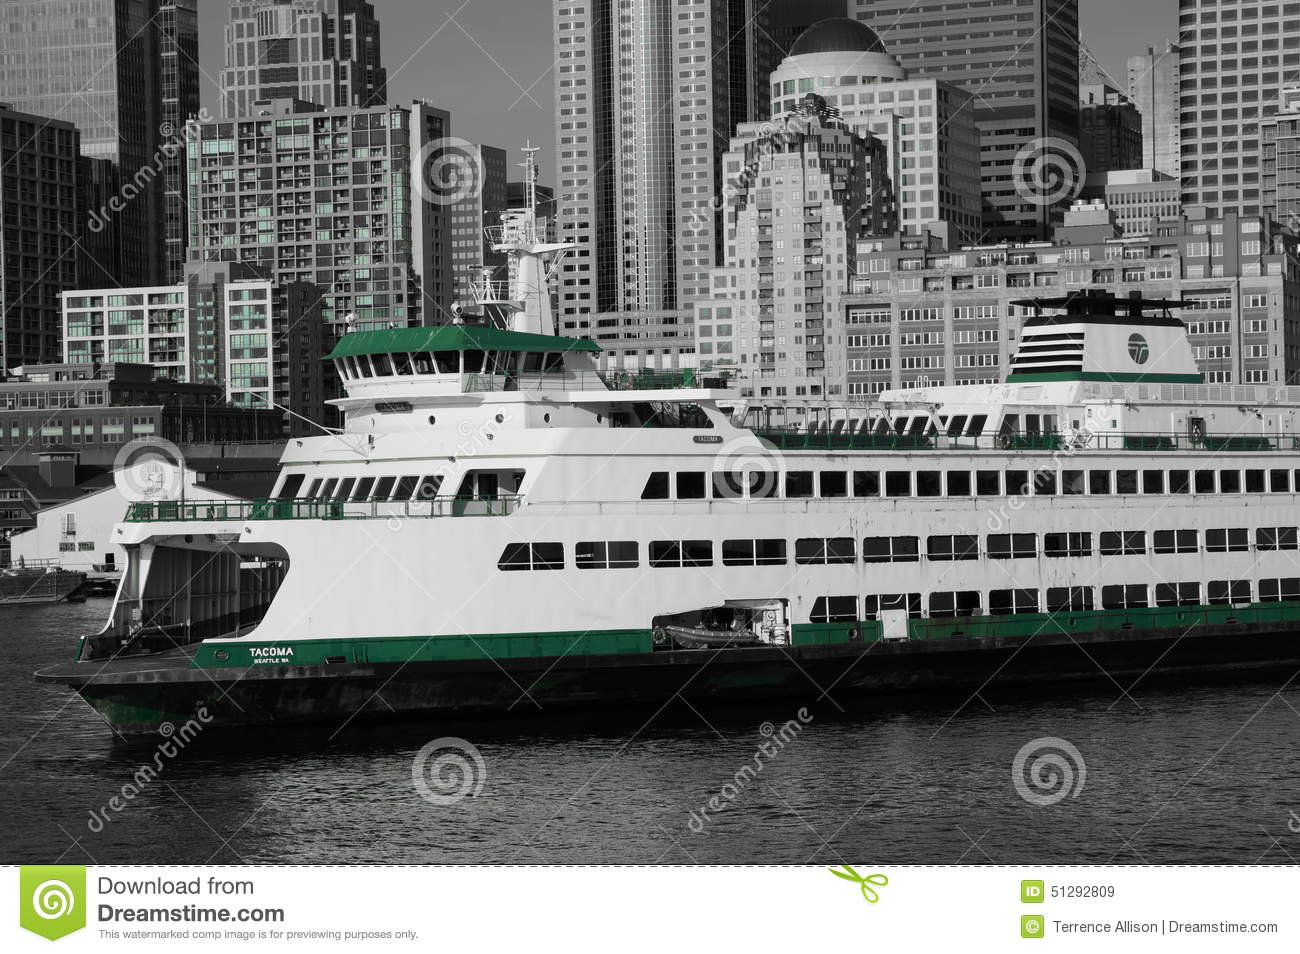 55 bremerton ferry photos free royalty free stock photos from dreamstime 55 bremerton ferry photos free royalty free stock photos from dreamstime